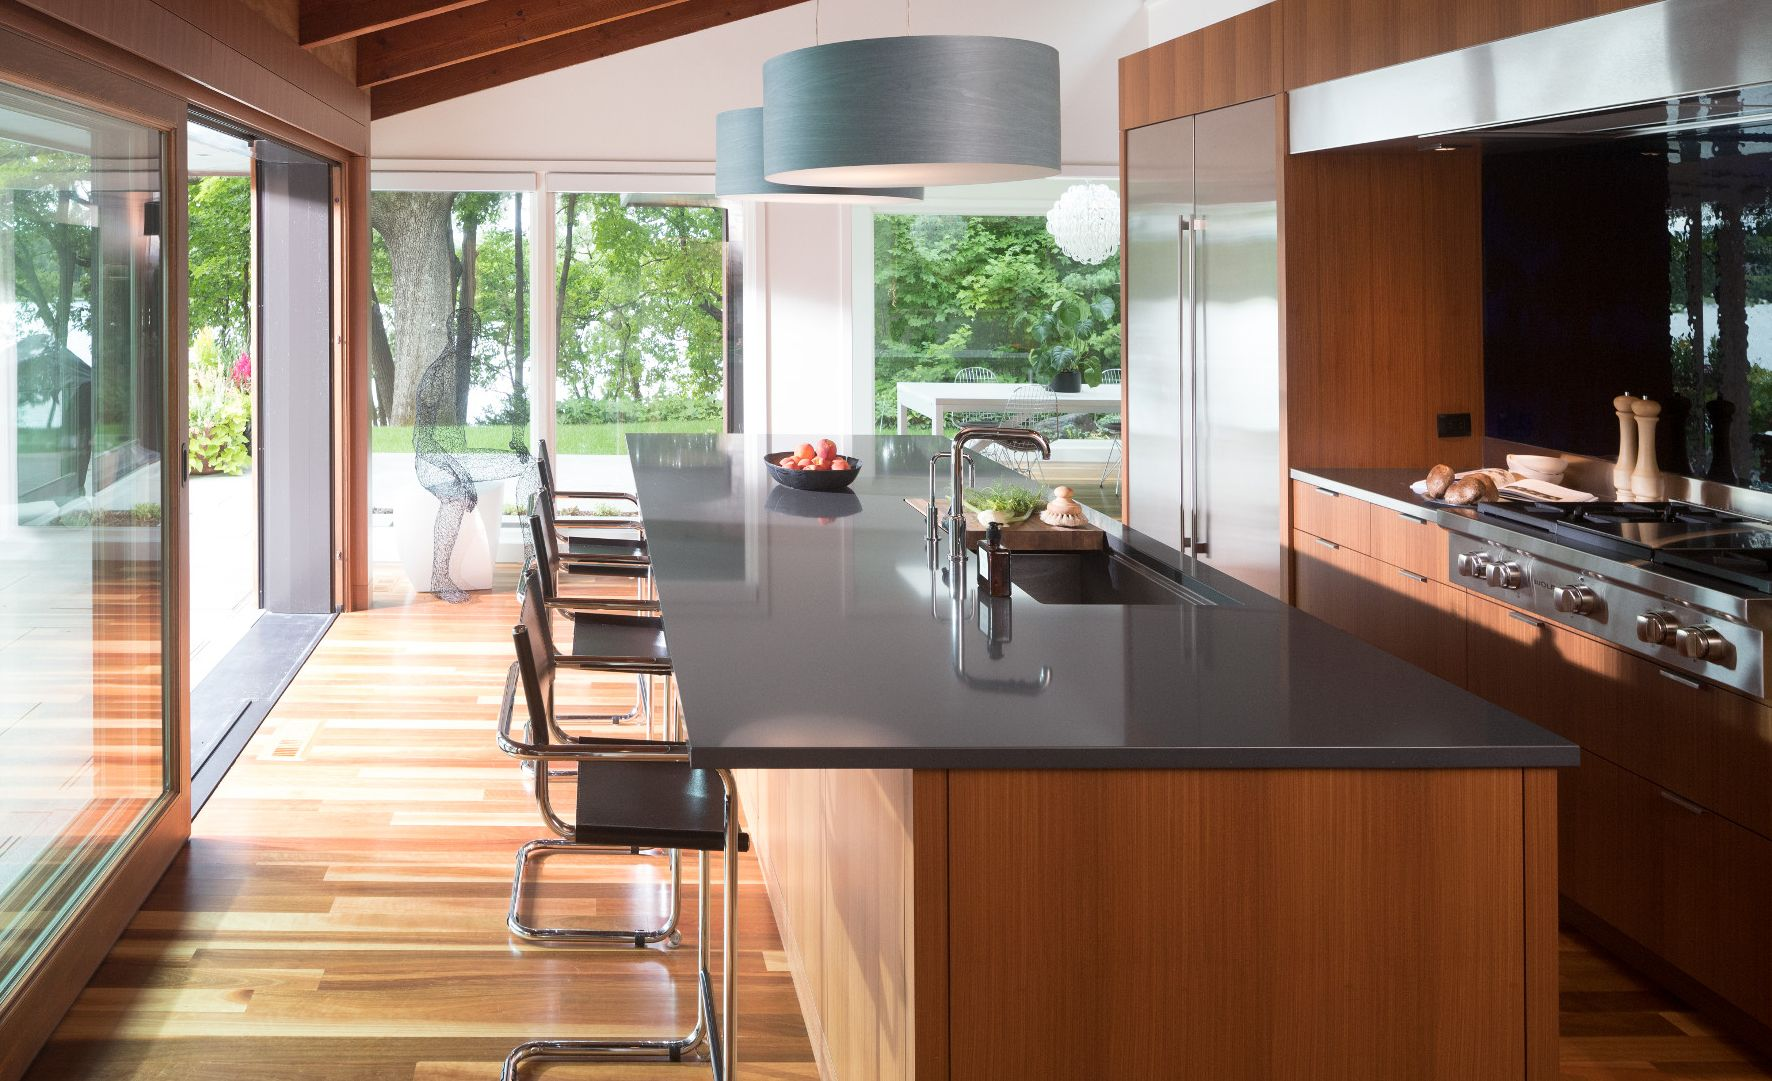 Cambria Fieldstone countertops in a midcentury modern kitchen remodel.